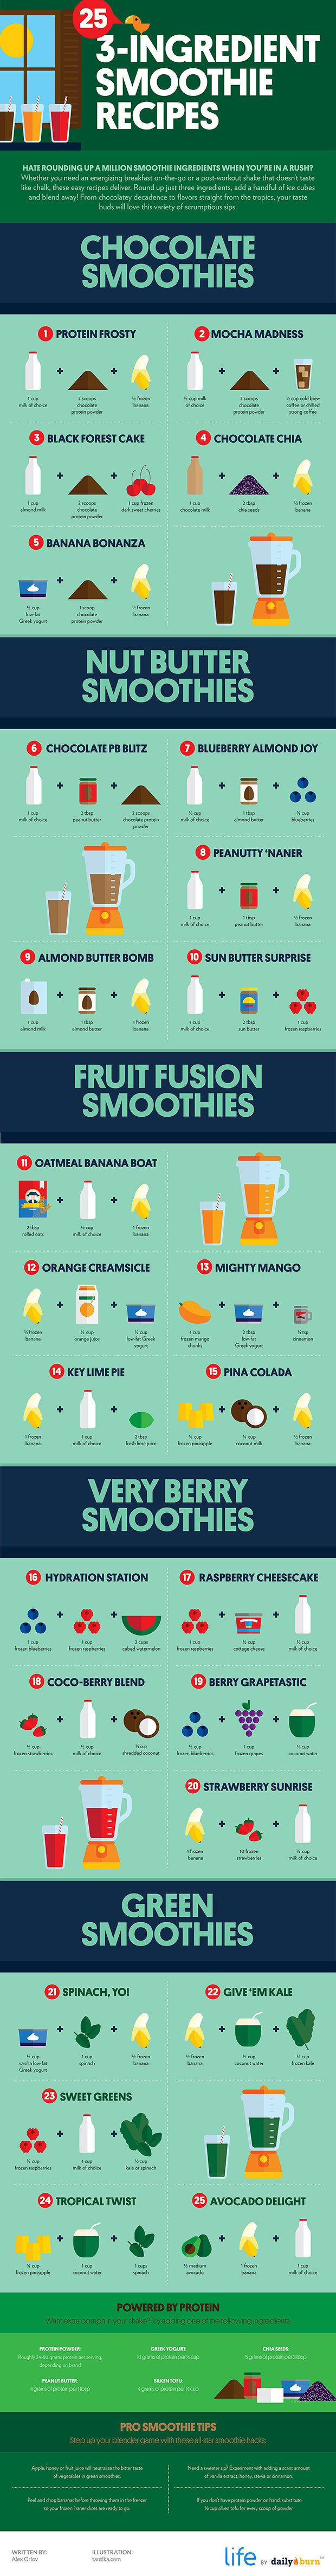 12. Smoothie guide